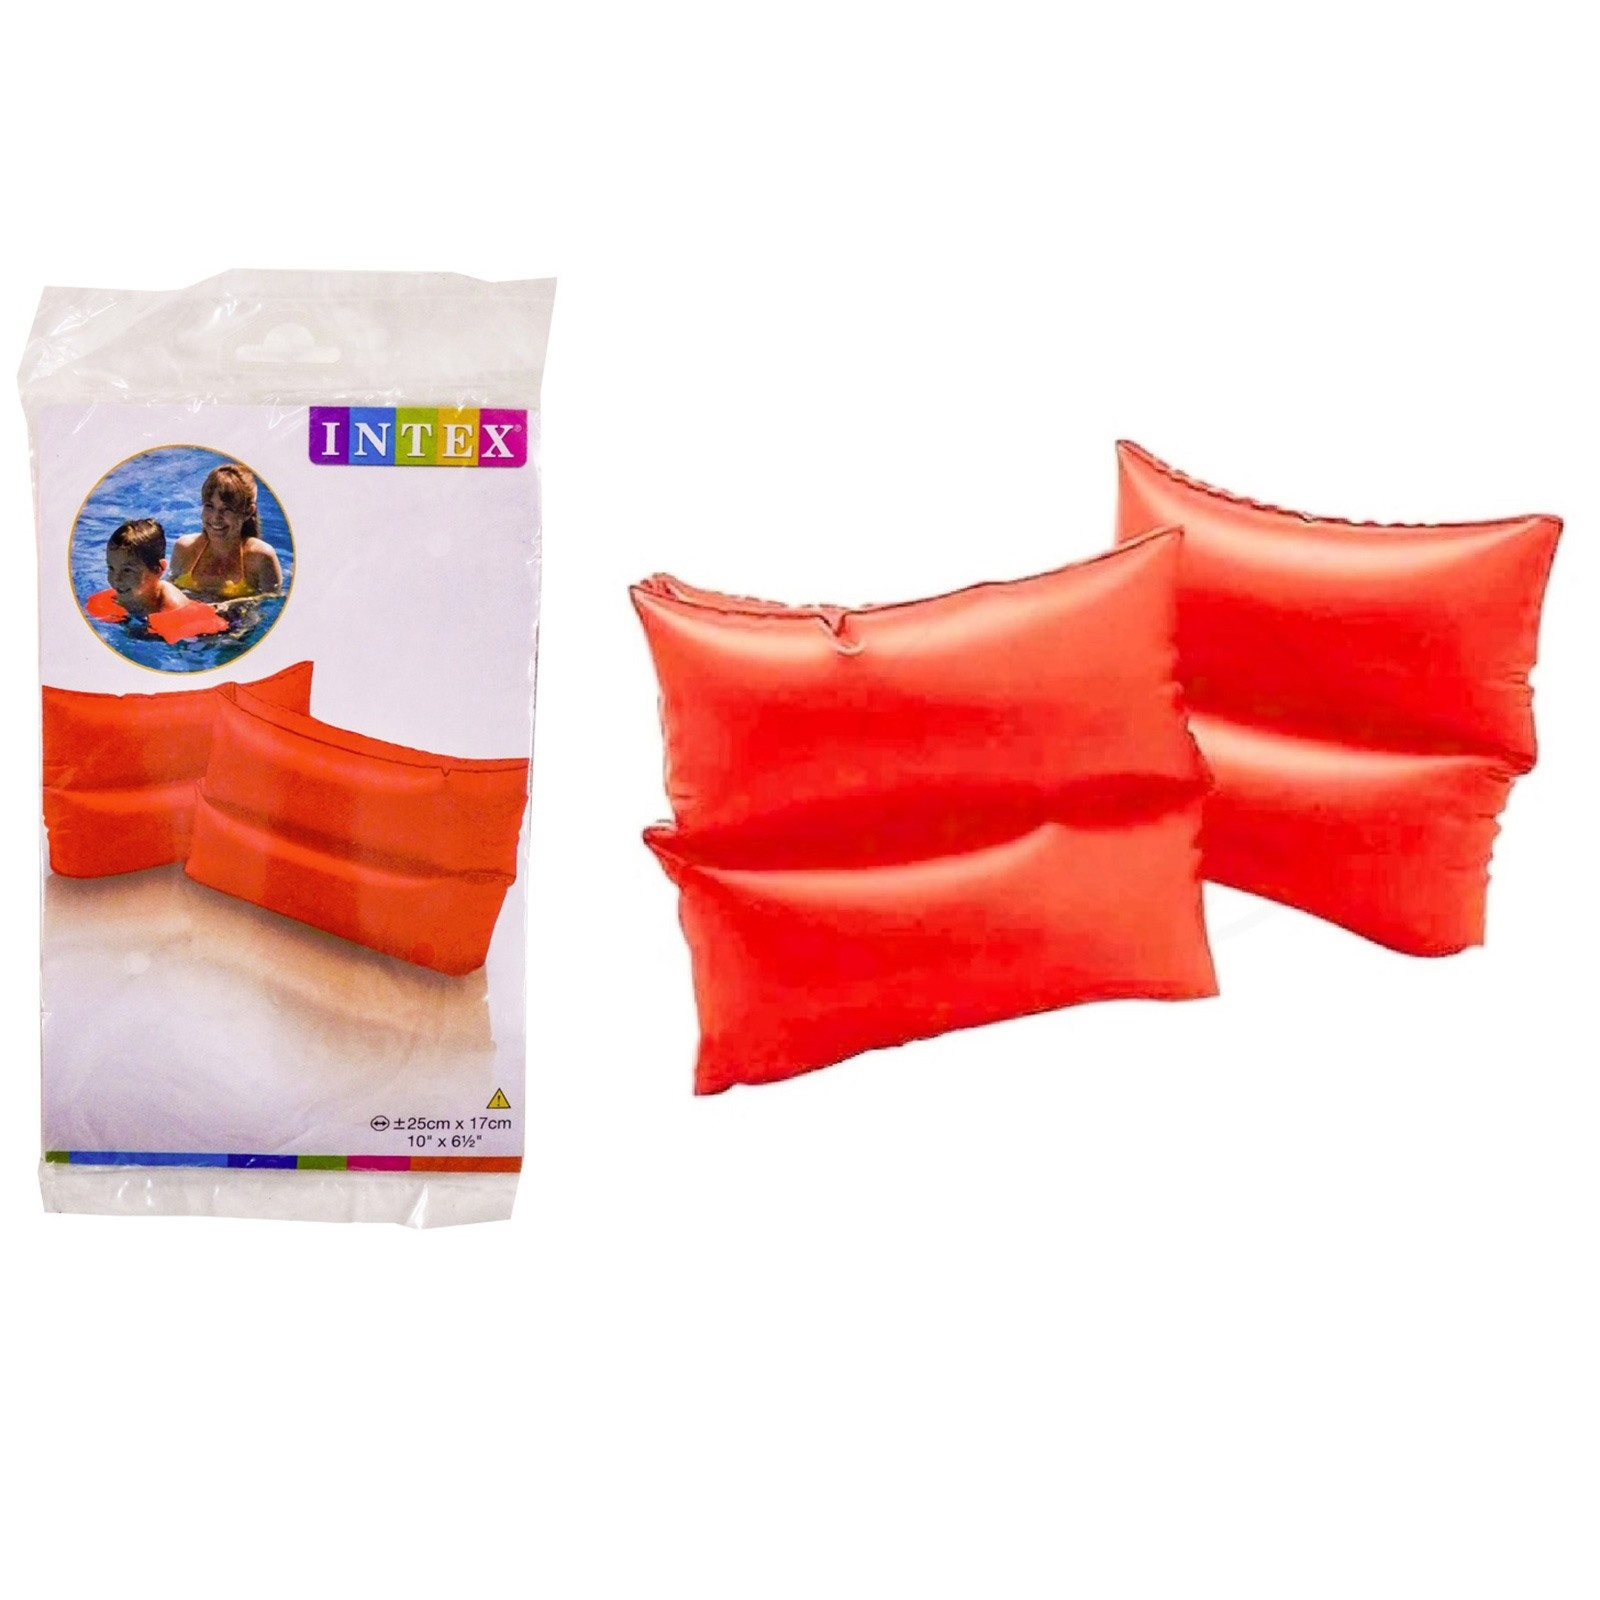 Ebebek İntex Red Arm Floats 25x17 Cm